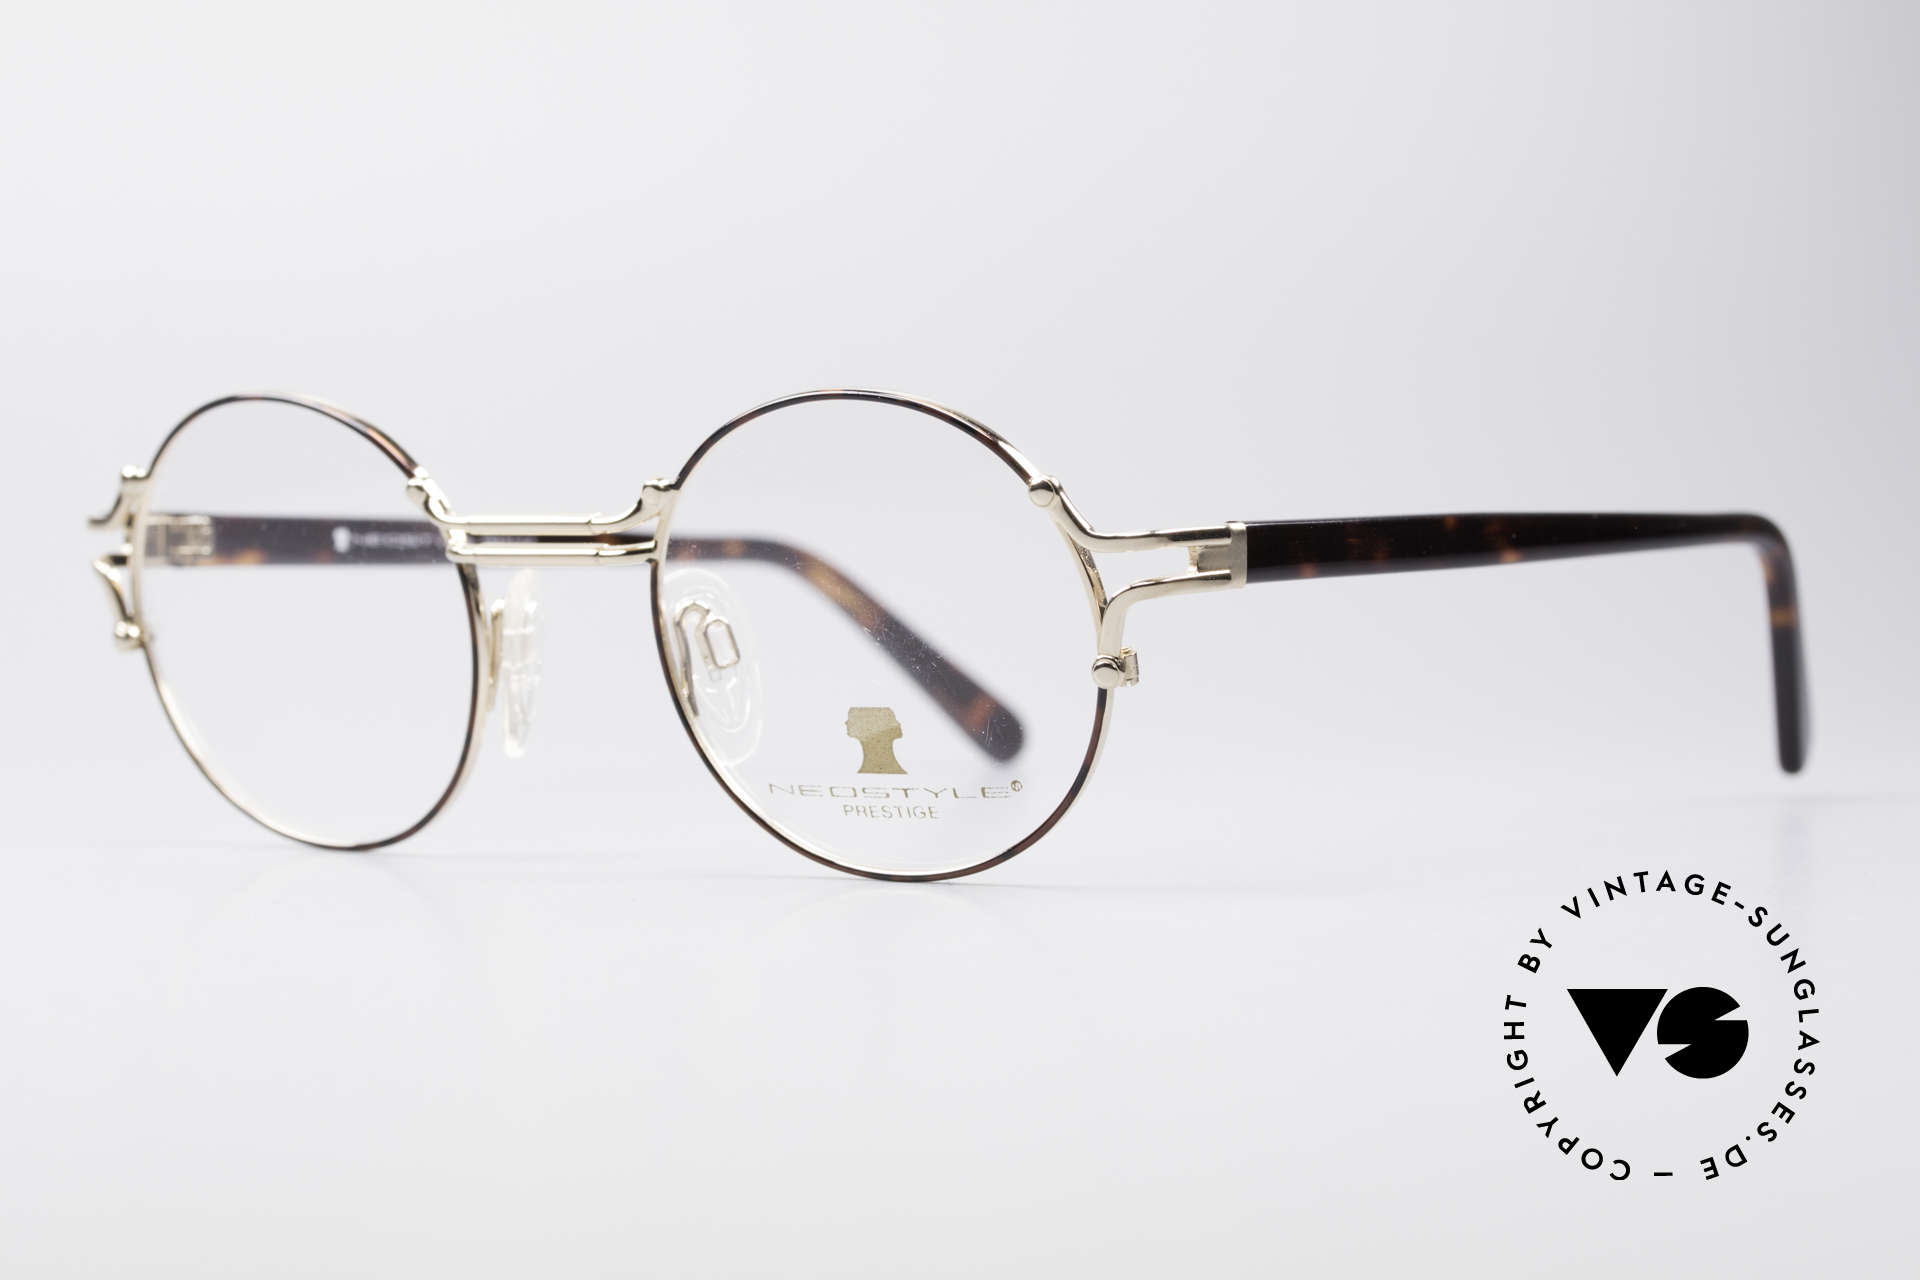 Neostyle Academic 8 Round Vintage Glasses 80's, truly high-end craftsmanship, made in Germany, Made for Men and Women